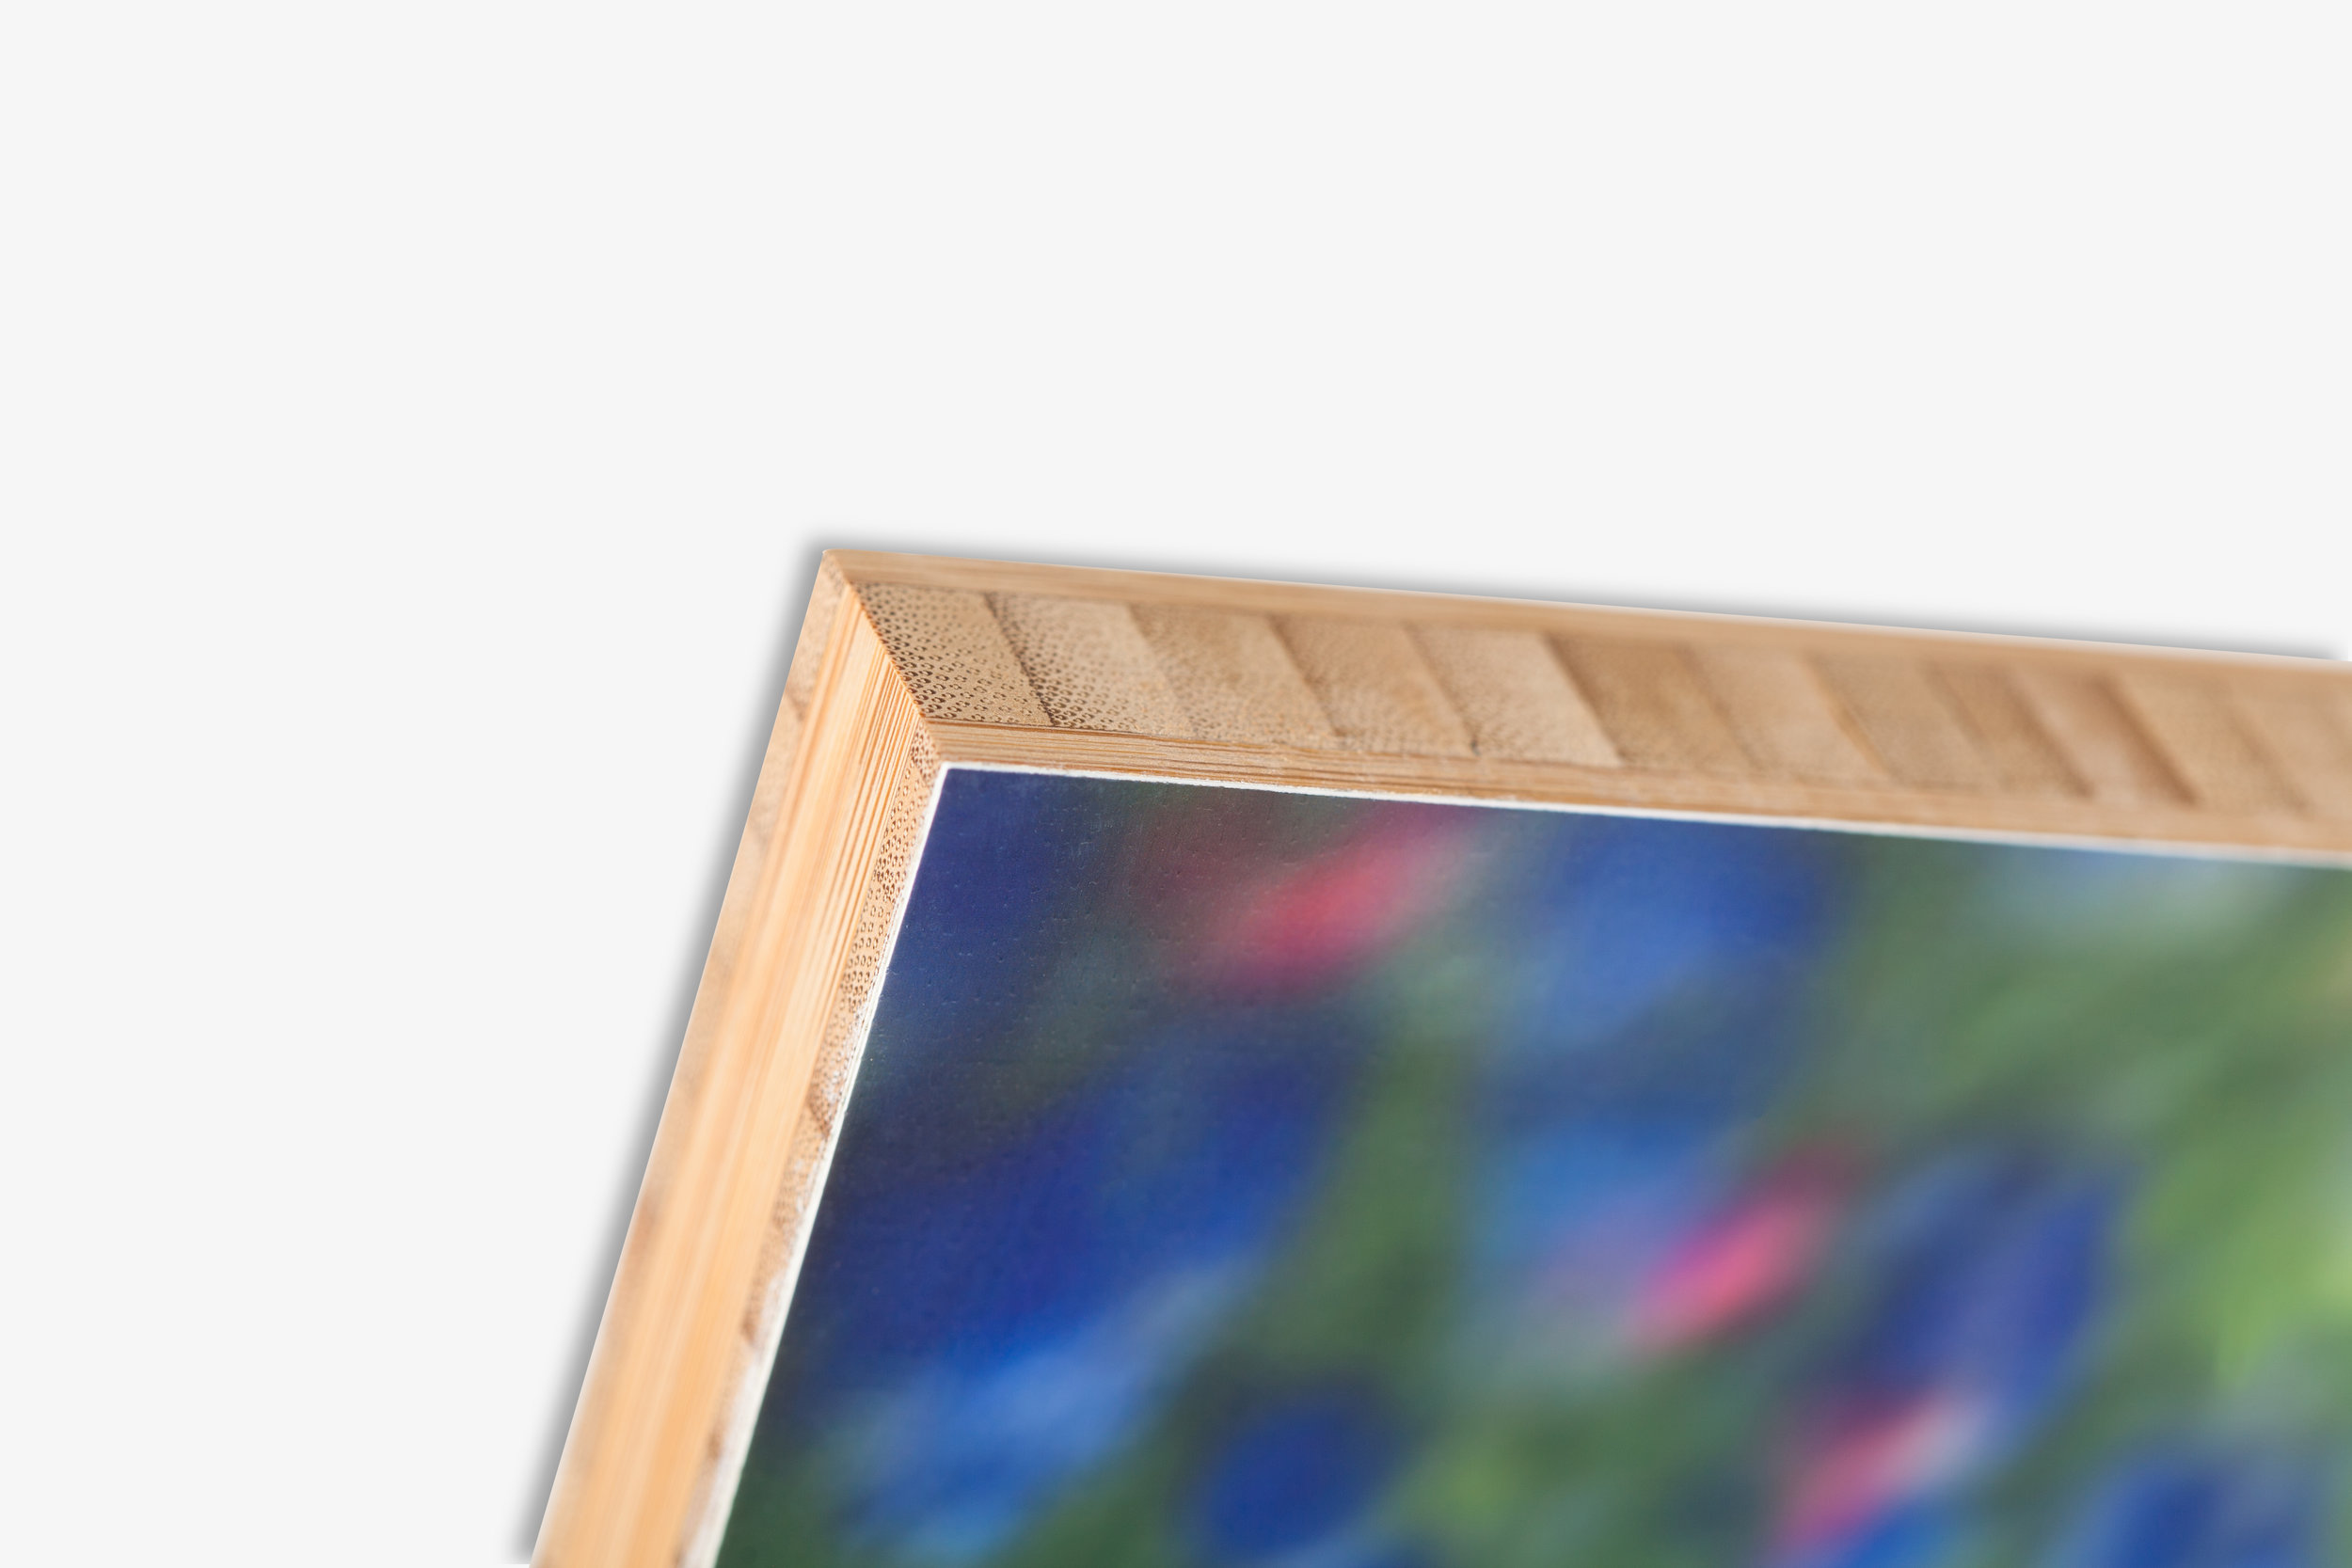 Bamboo Wood Mounted Photo Print